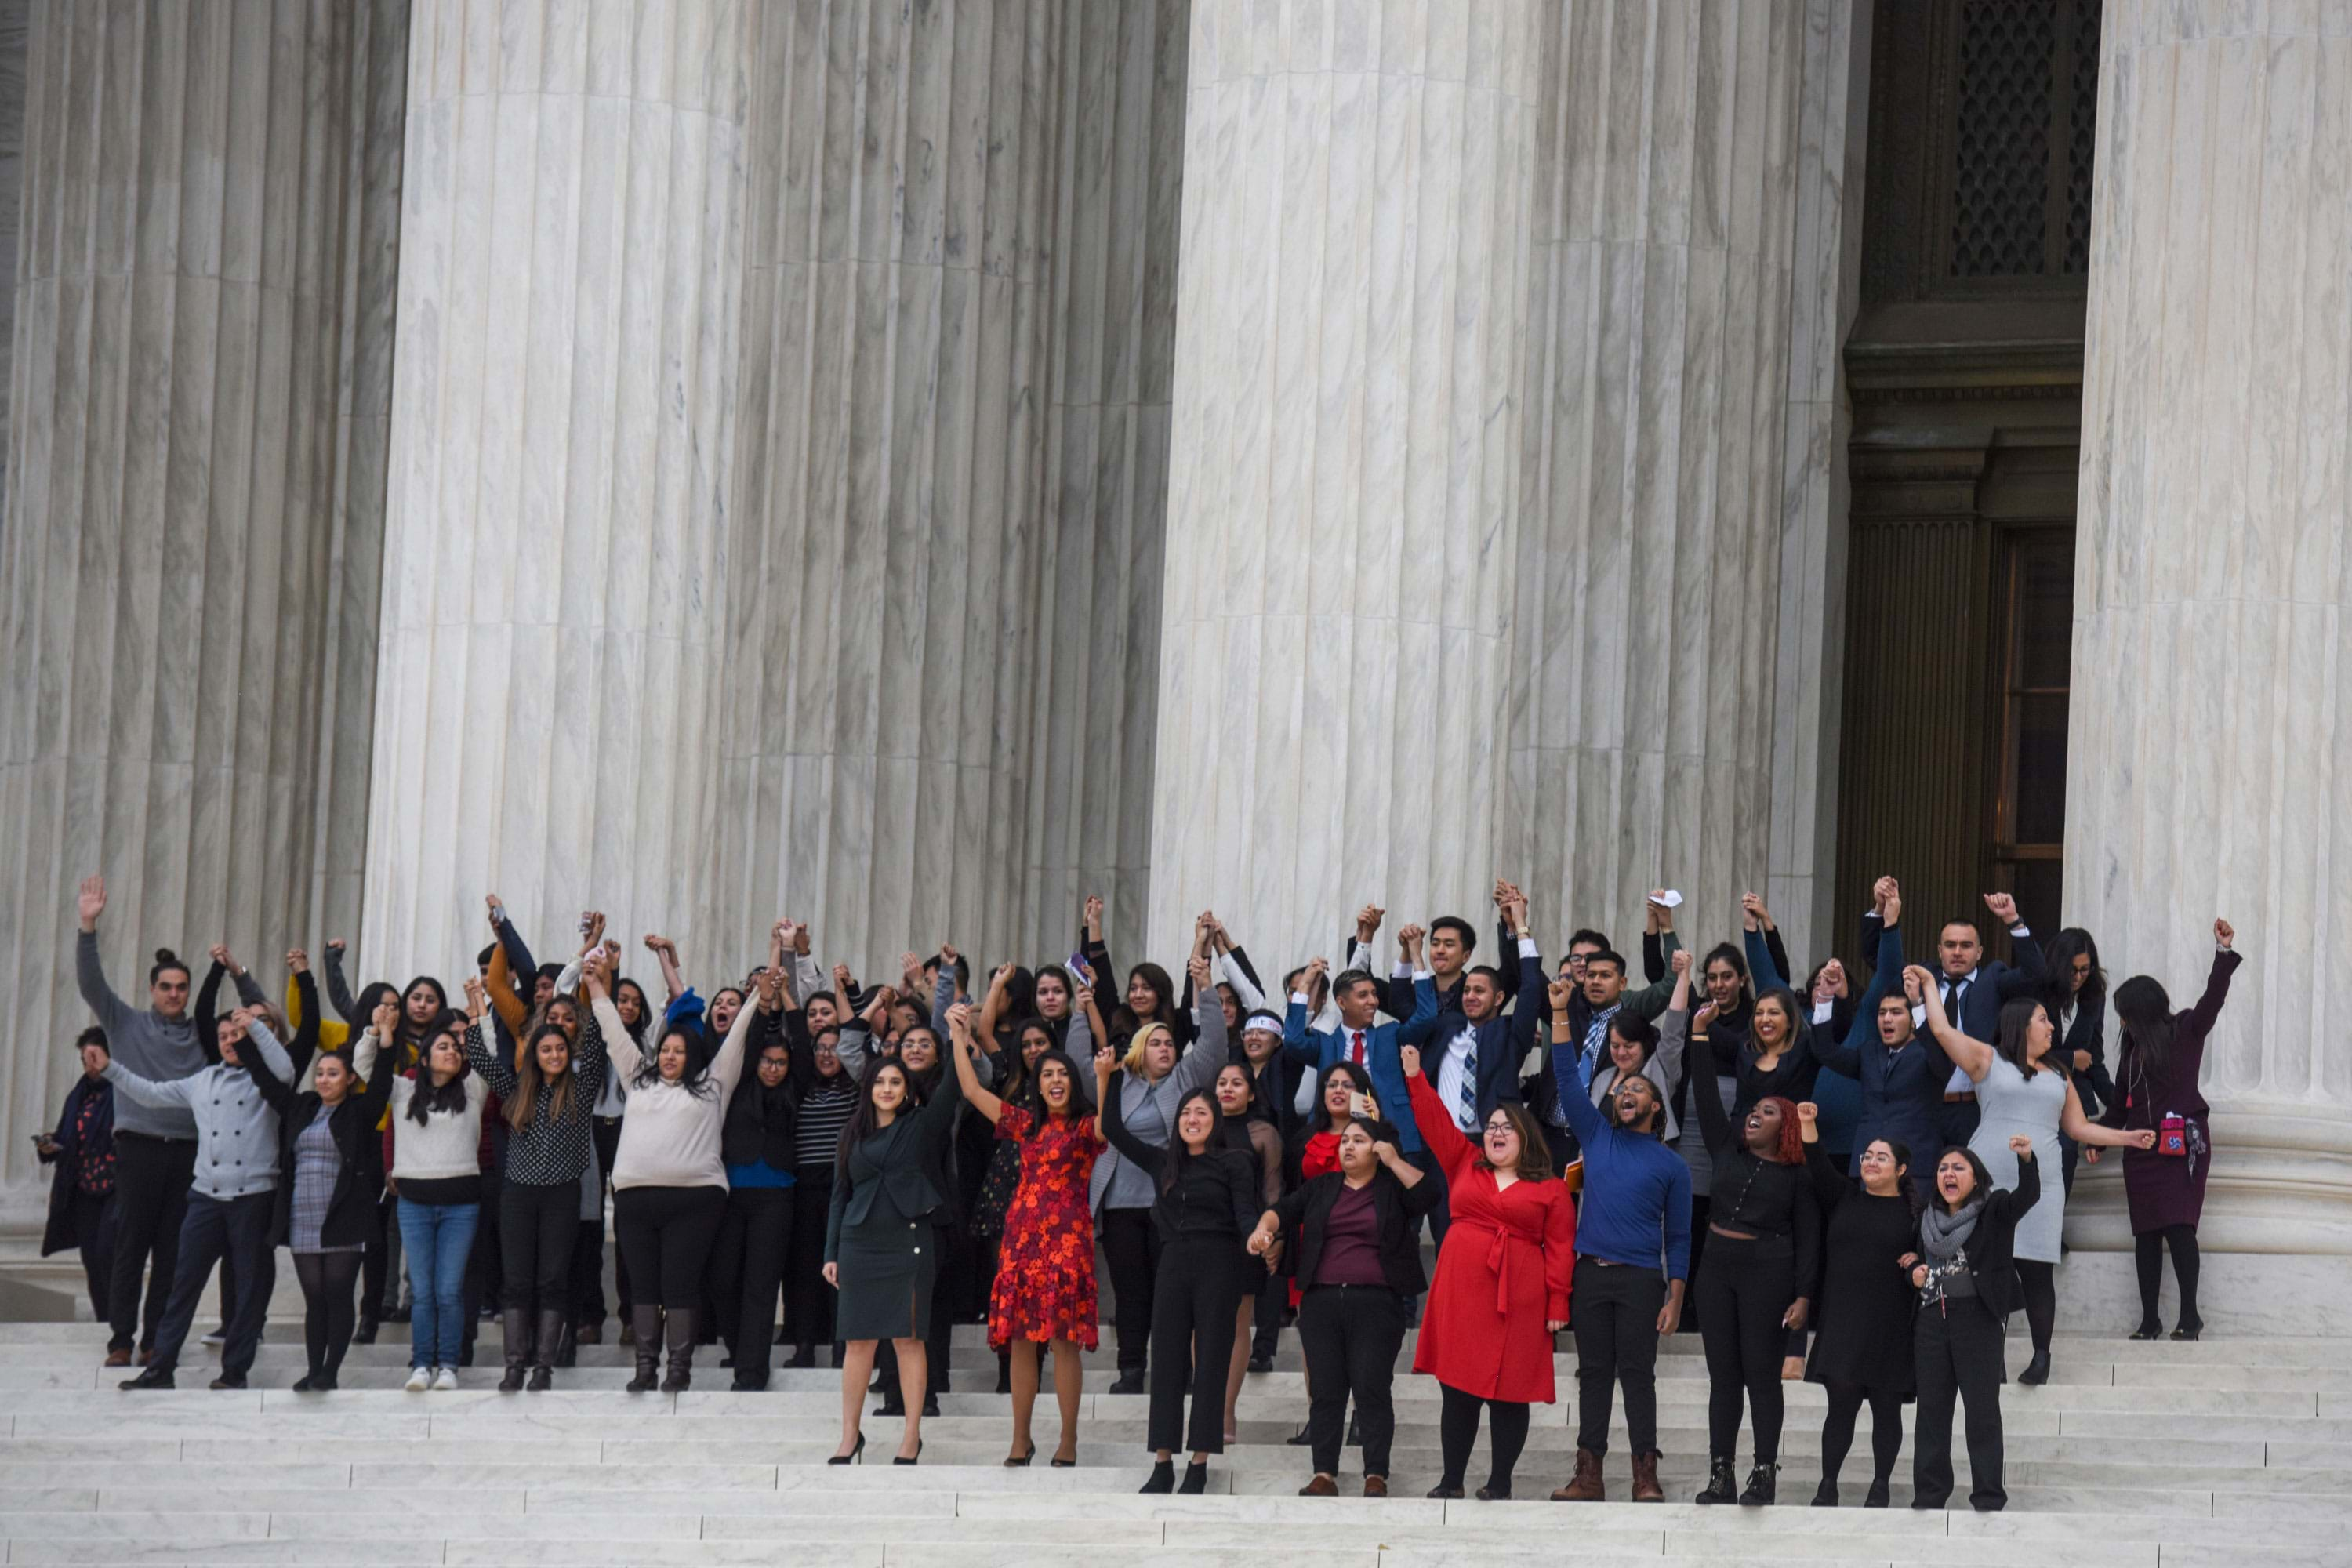 A group of people on the steps of the US Supreme Court raising their arms and cheering.